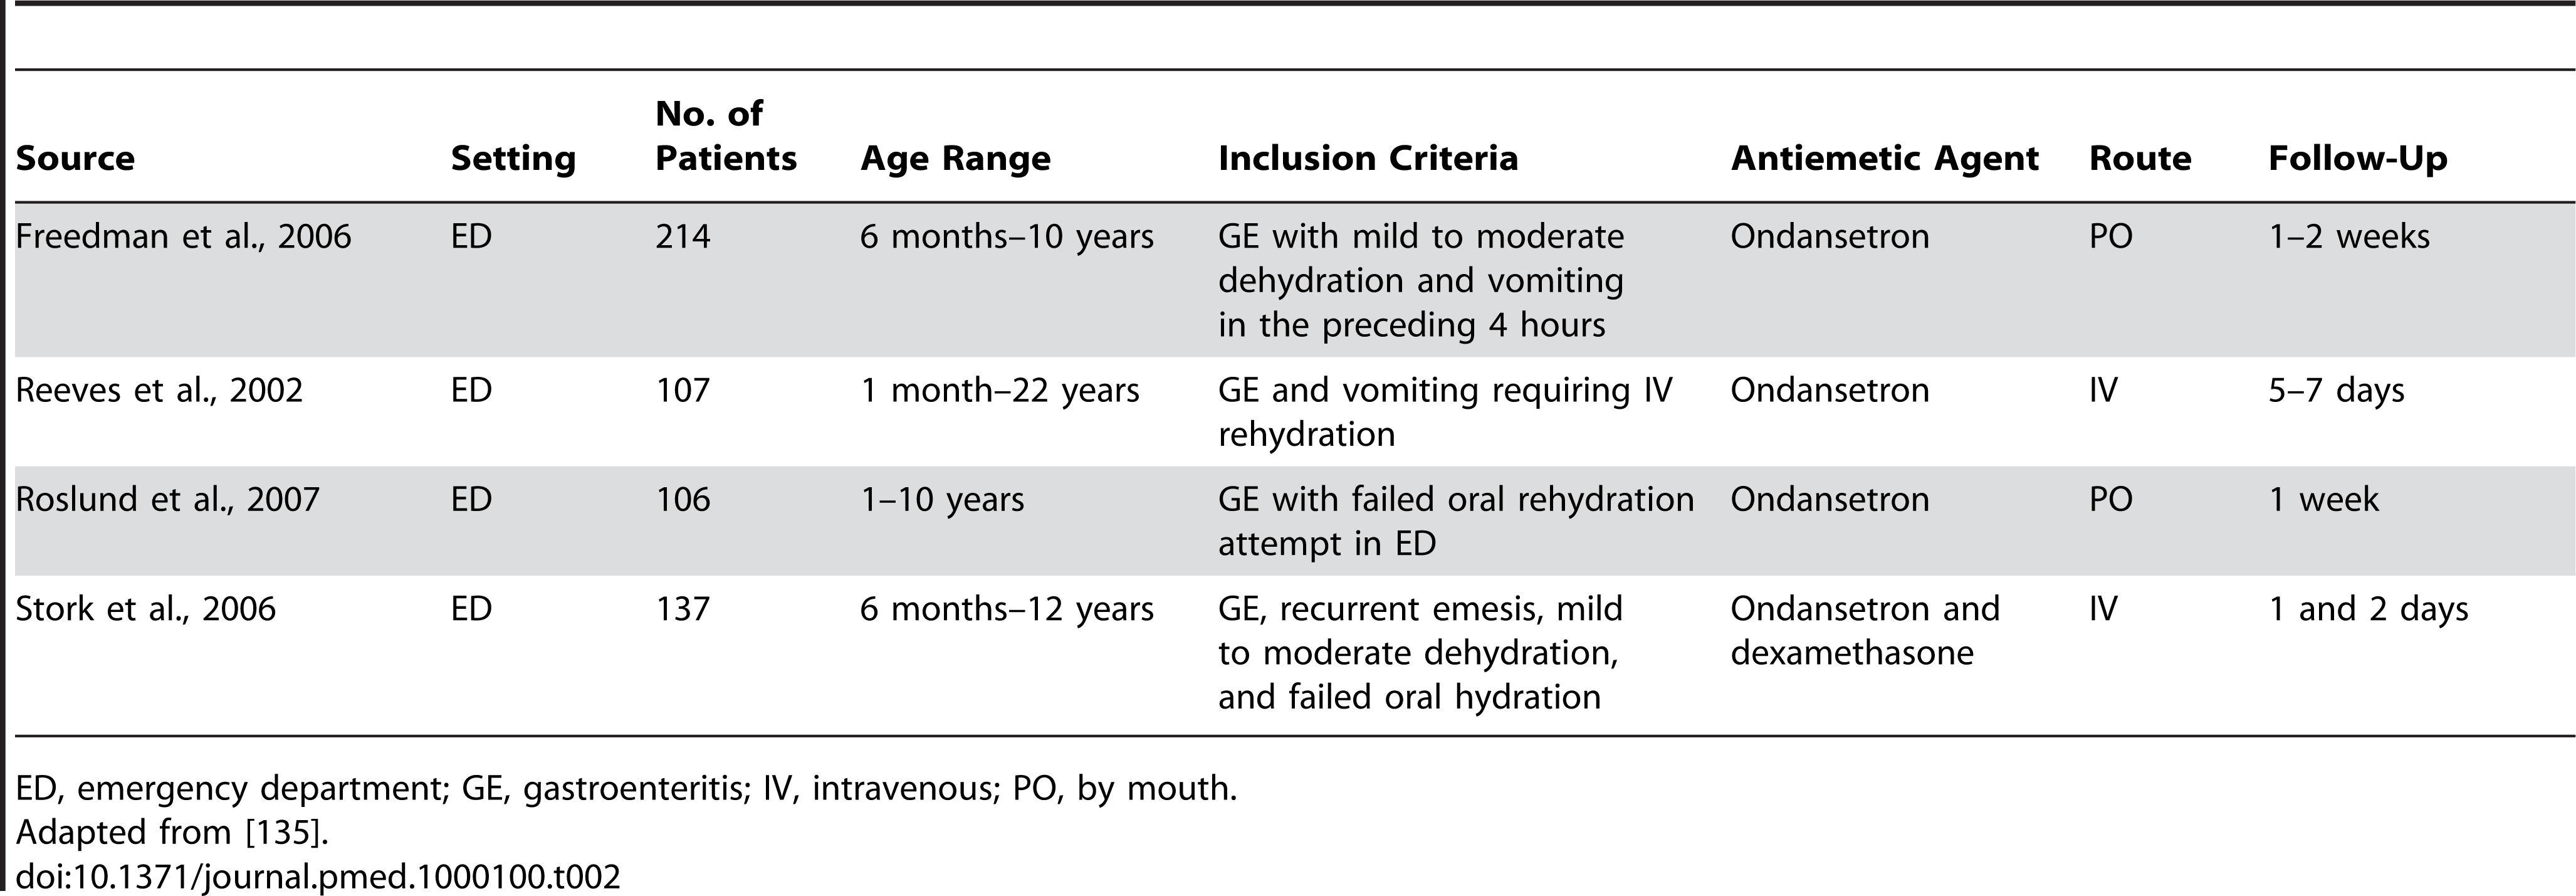 Example Table: Summary of included studies evaluating the efficacy of antiemetic agents in acute gastroenteritis.